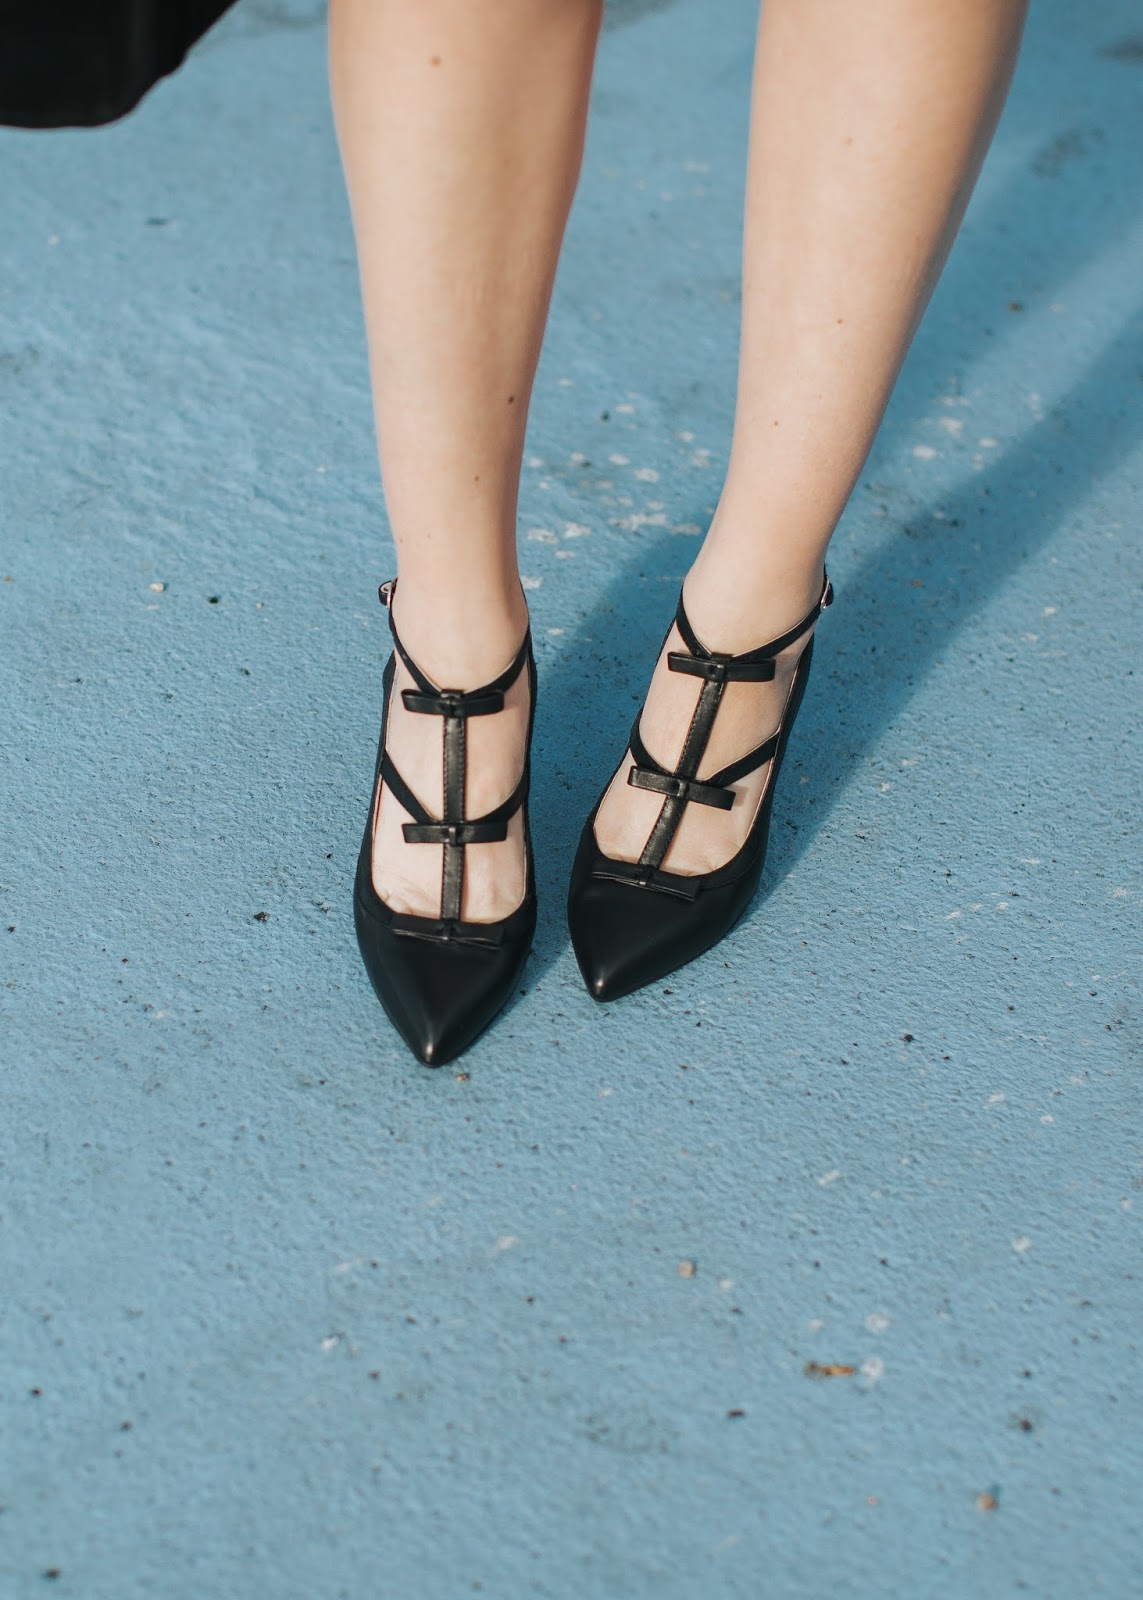 Ssh-oes, Quiet shoes, bow heels